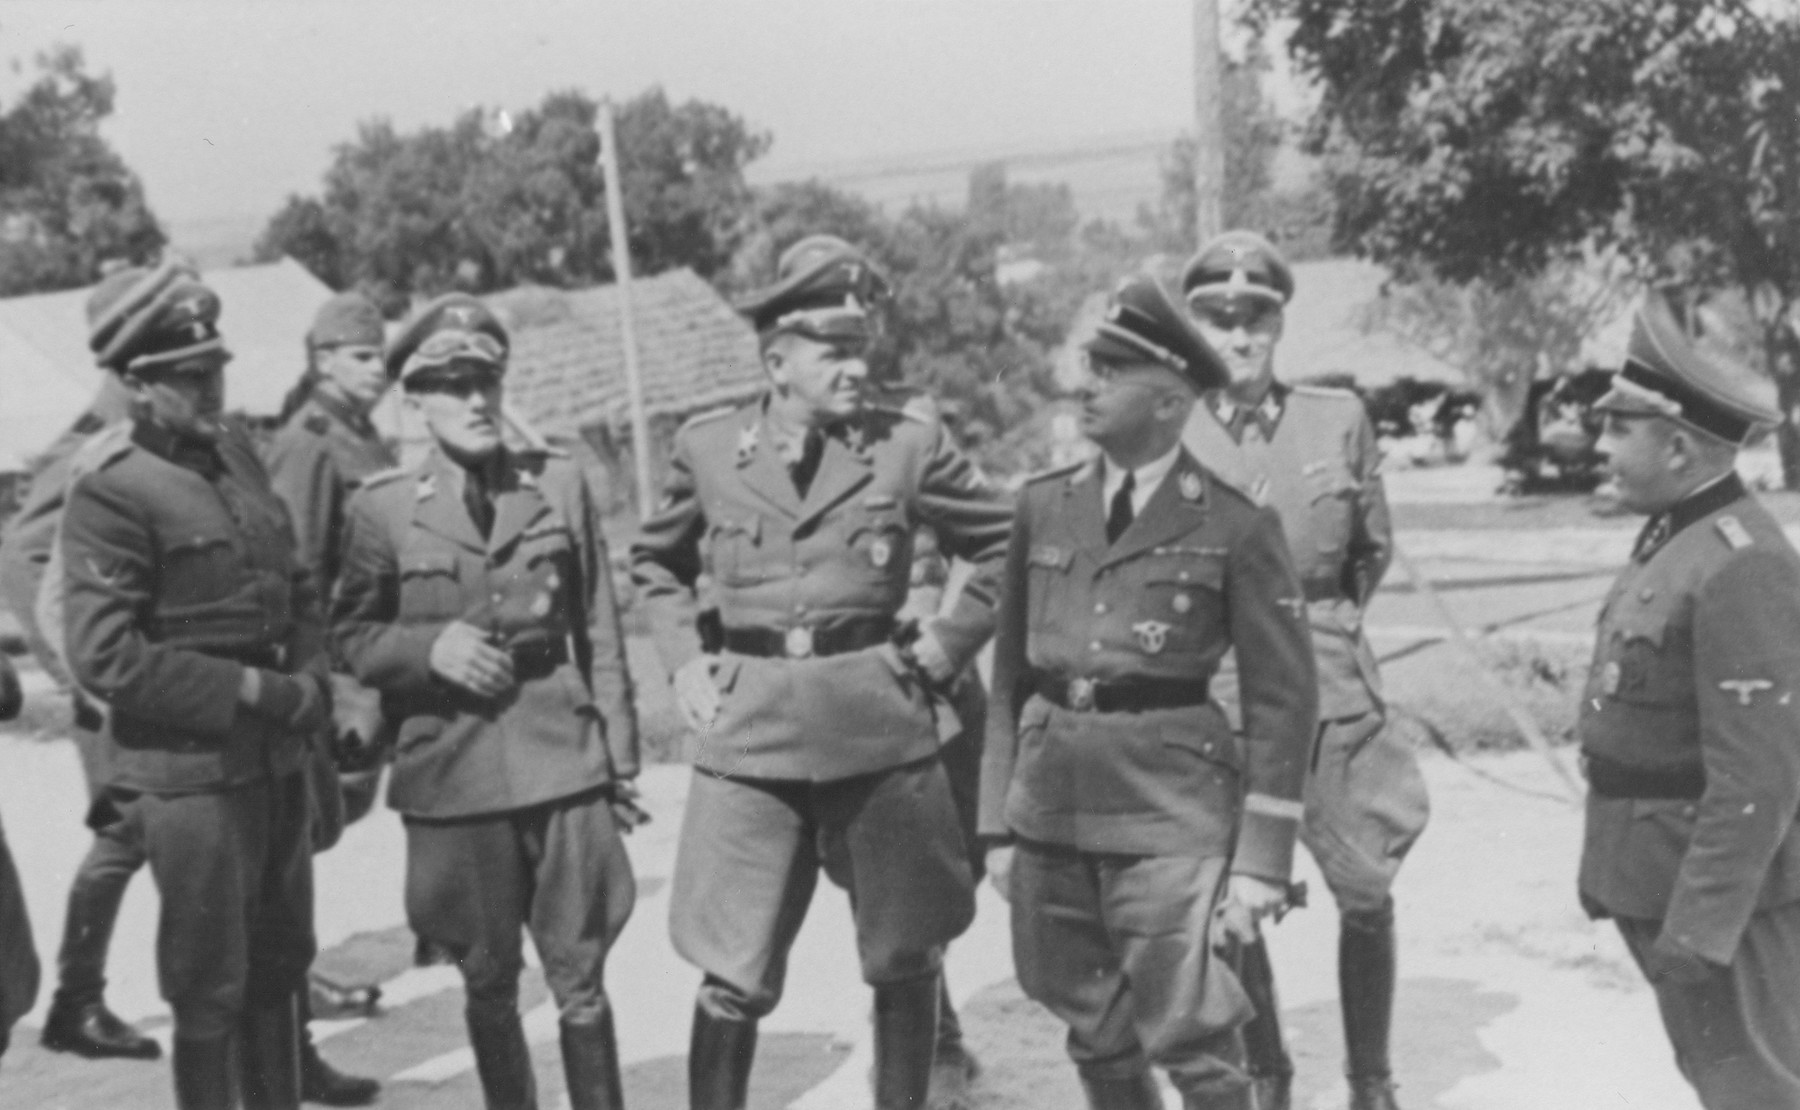 Reichsfuehrer SS Heinrich Himmler (center, right) on an official tour of a Jewish labor camp along the main supply route in Galicia.  Also pictured is camp Commandant Friedrich Warzok (far right), SS Gruppenfuehrer Hanns Johst (center), and SS Gruppenfuehrer Fritz Katzmann (second from the left with his hand on his belt).